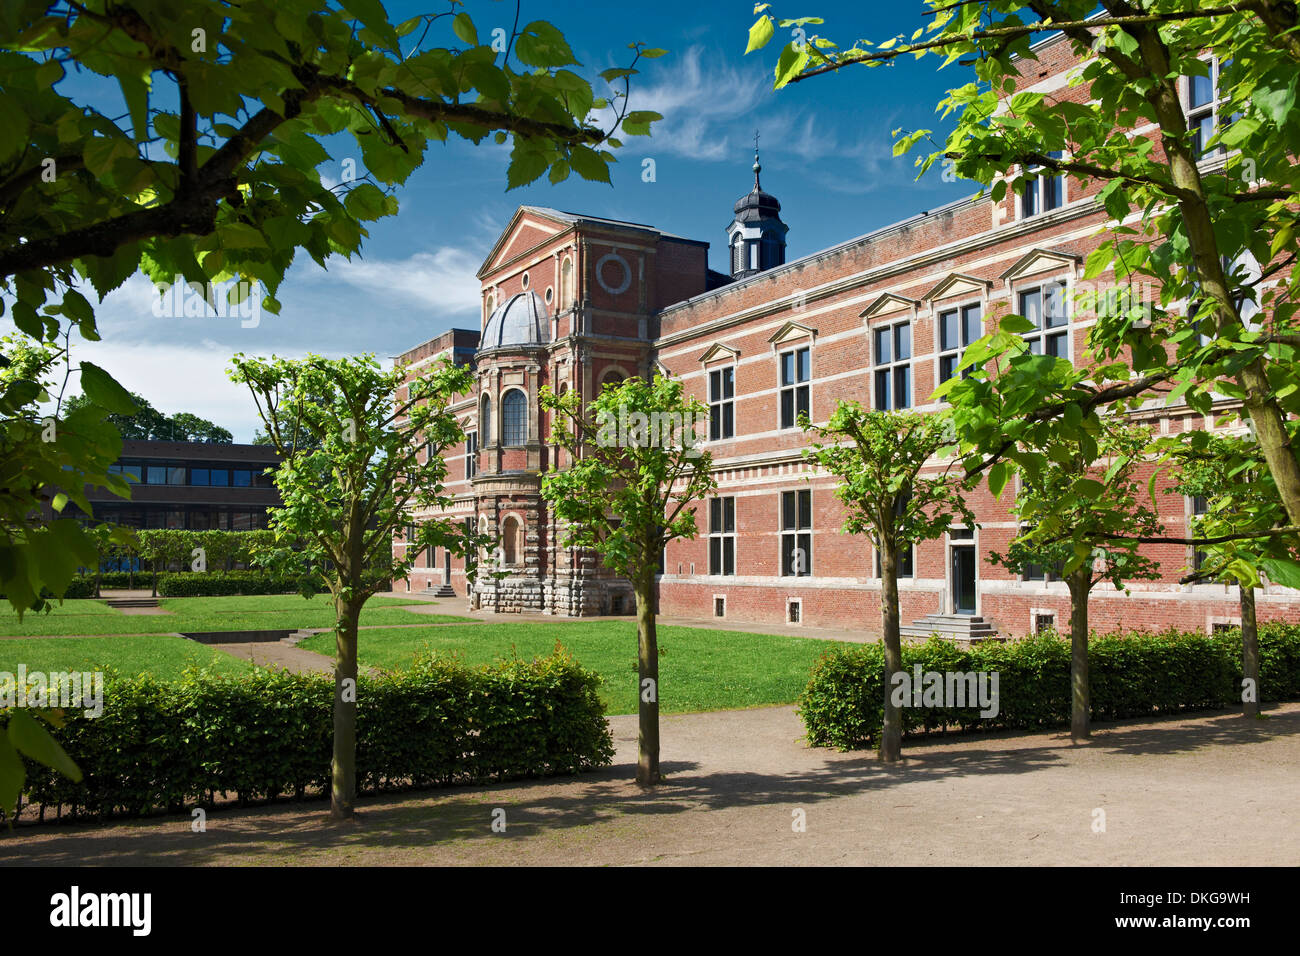 Citadel Juelich, Juelich, North Rhine-Westphalia, Germany, Europe - Stock Image